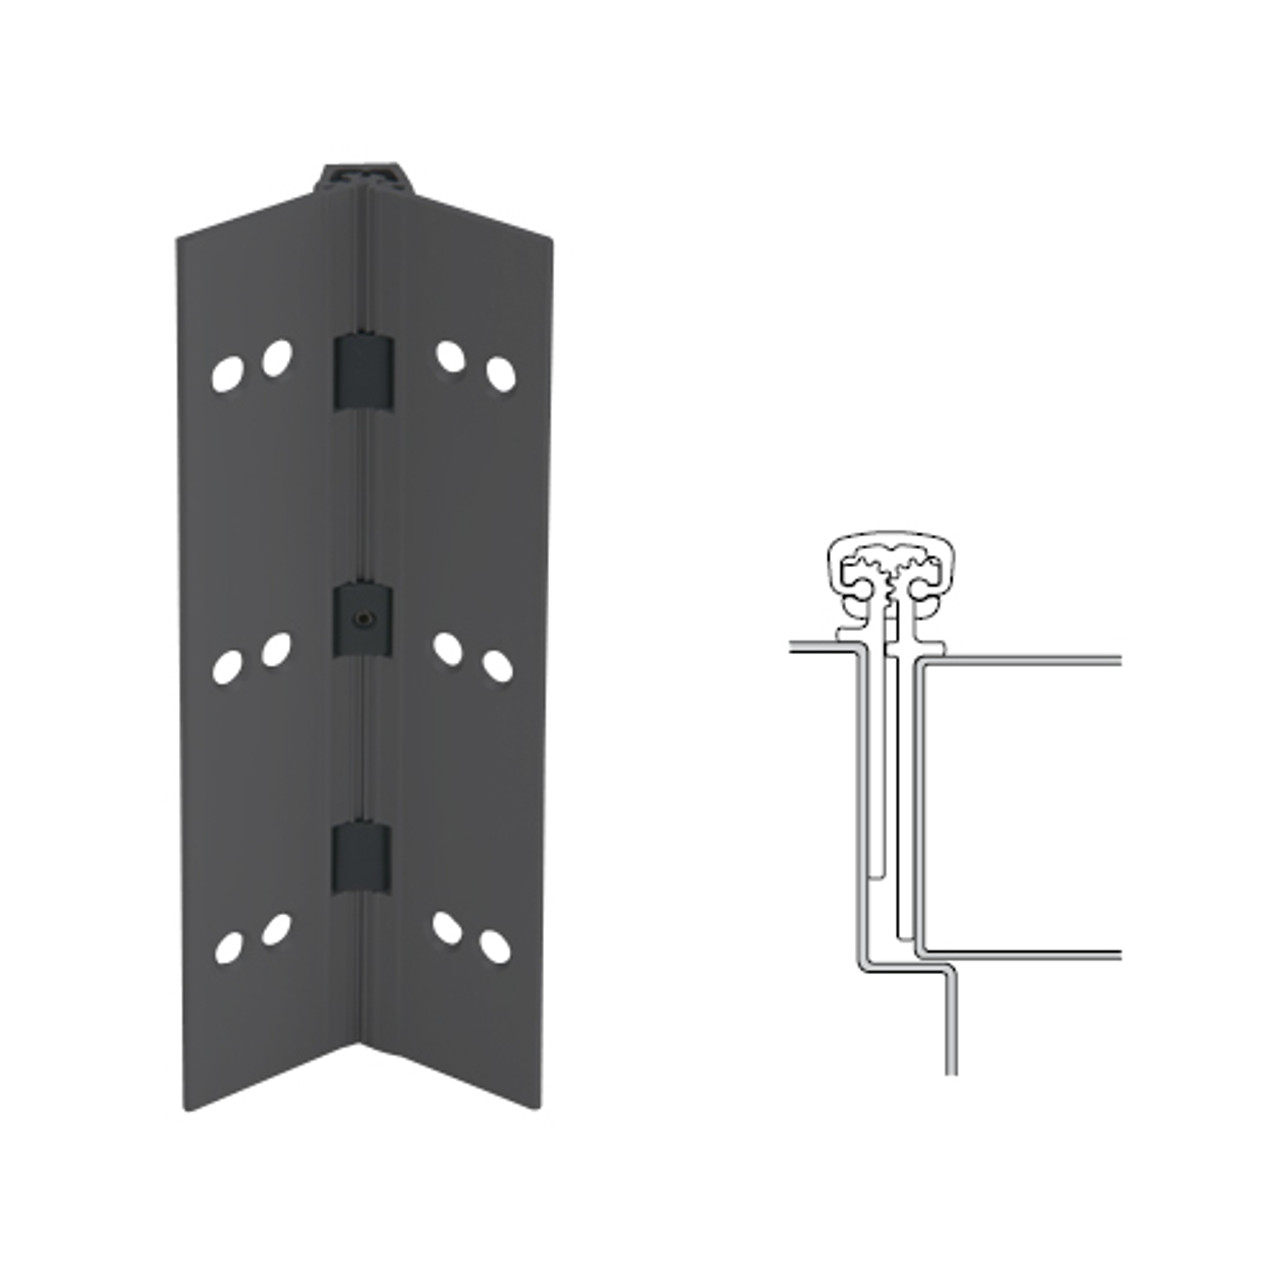 026XY-315AN-85-SECWDHM IVES Full Mortise Continuous Geared Hinges with Security Screws - Hex Pin Drive in Anodized Black